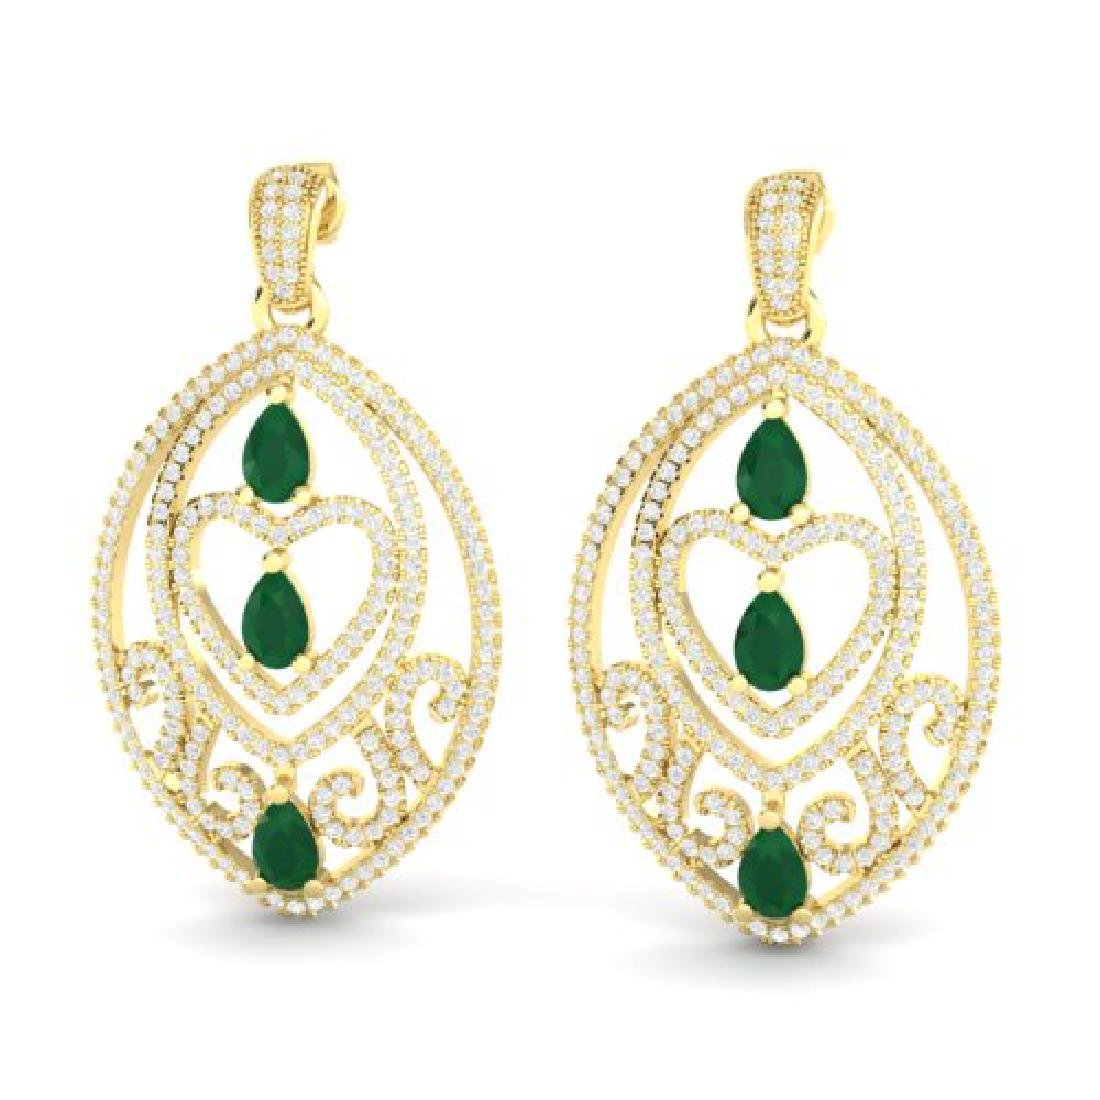 7 CTW Emerald & Micro Pave VS/SI Diamond Heart Earrings